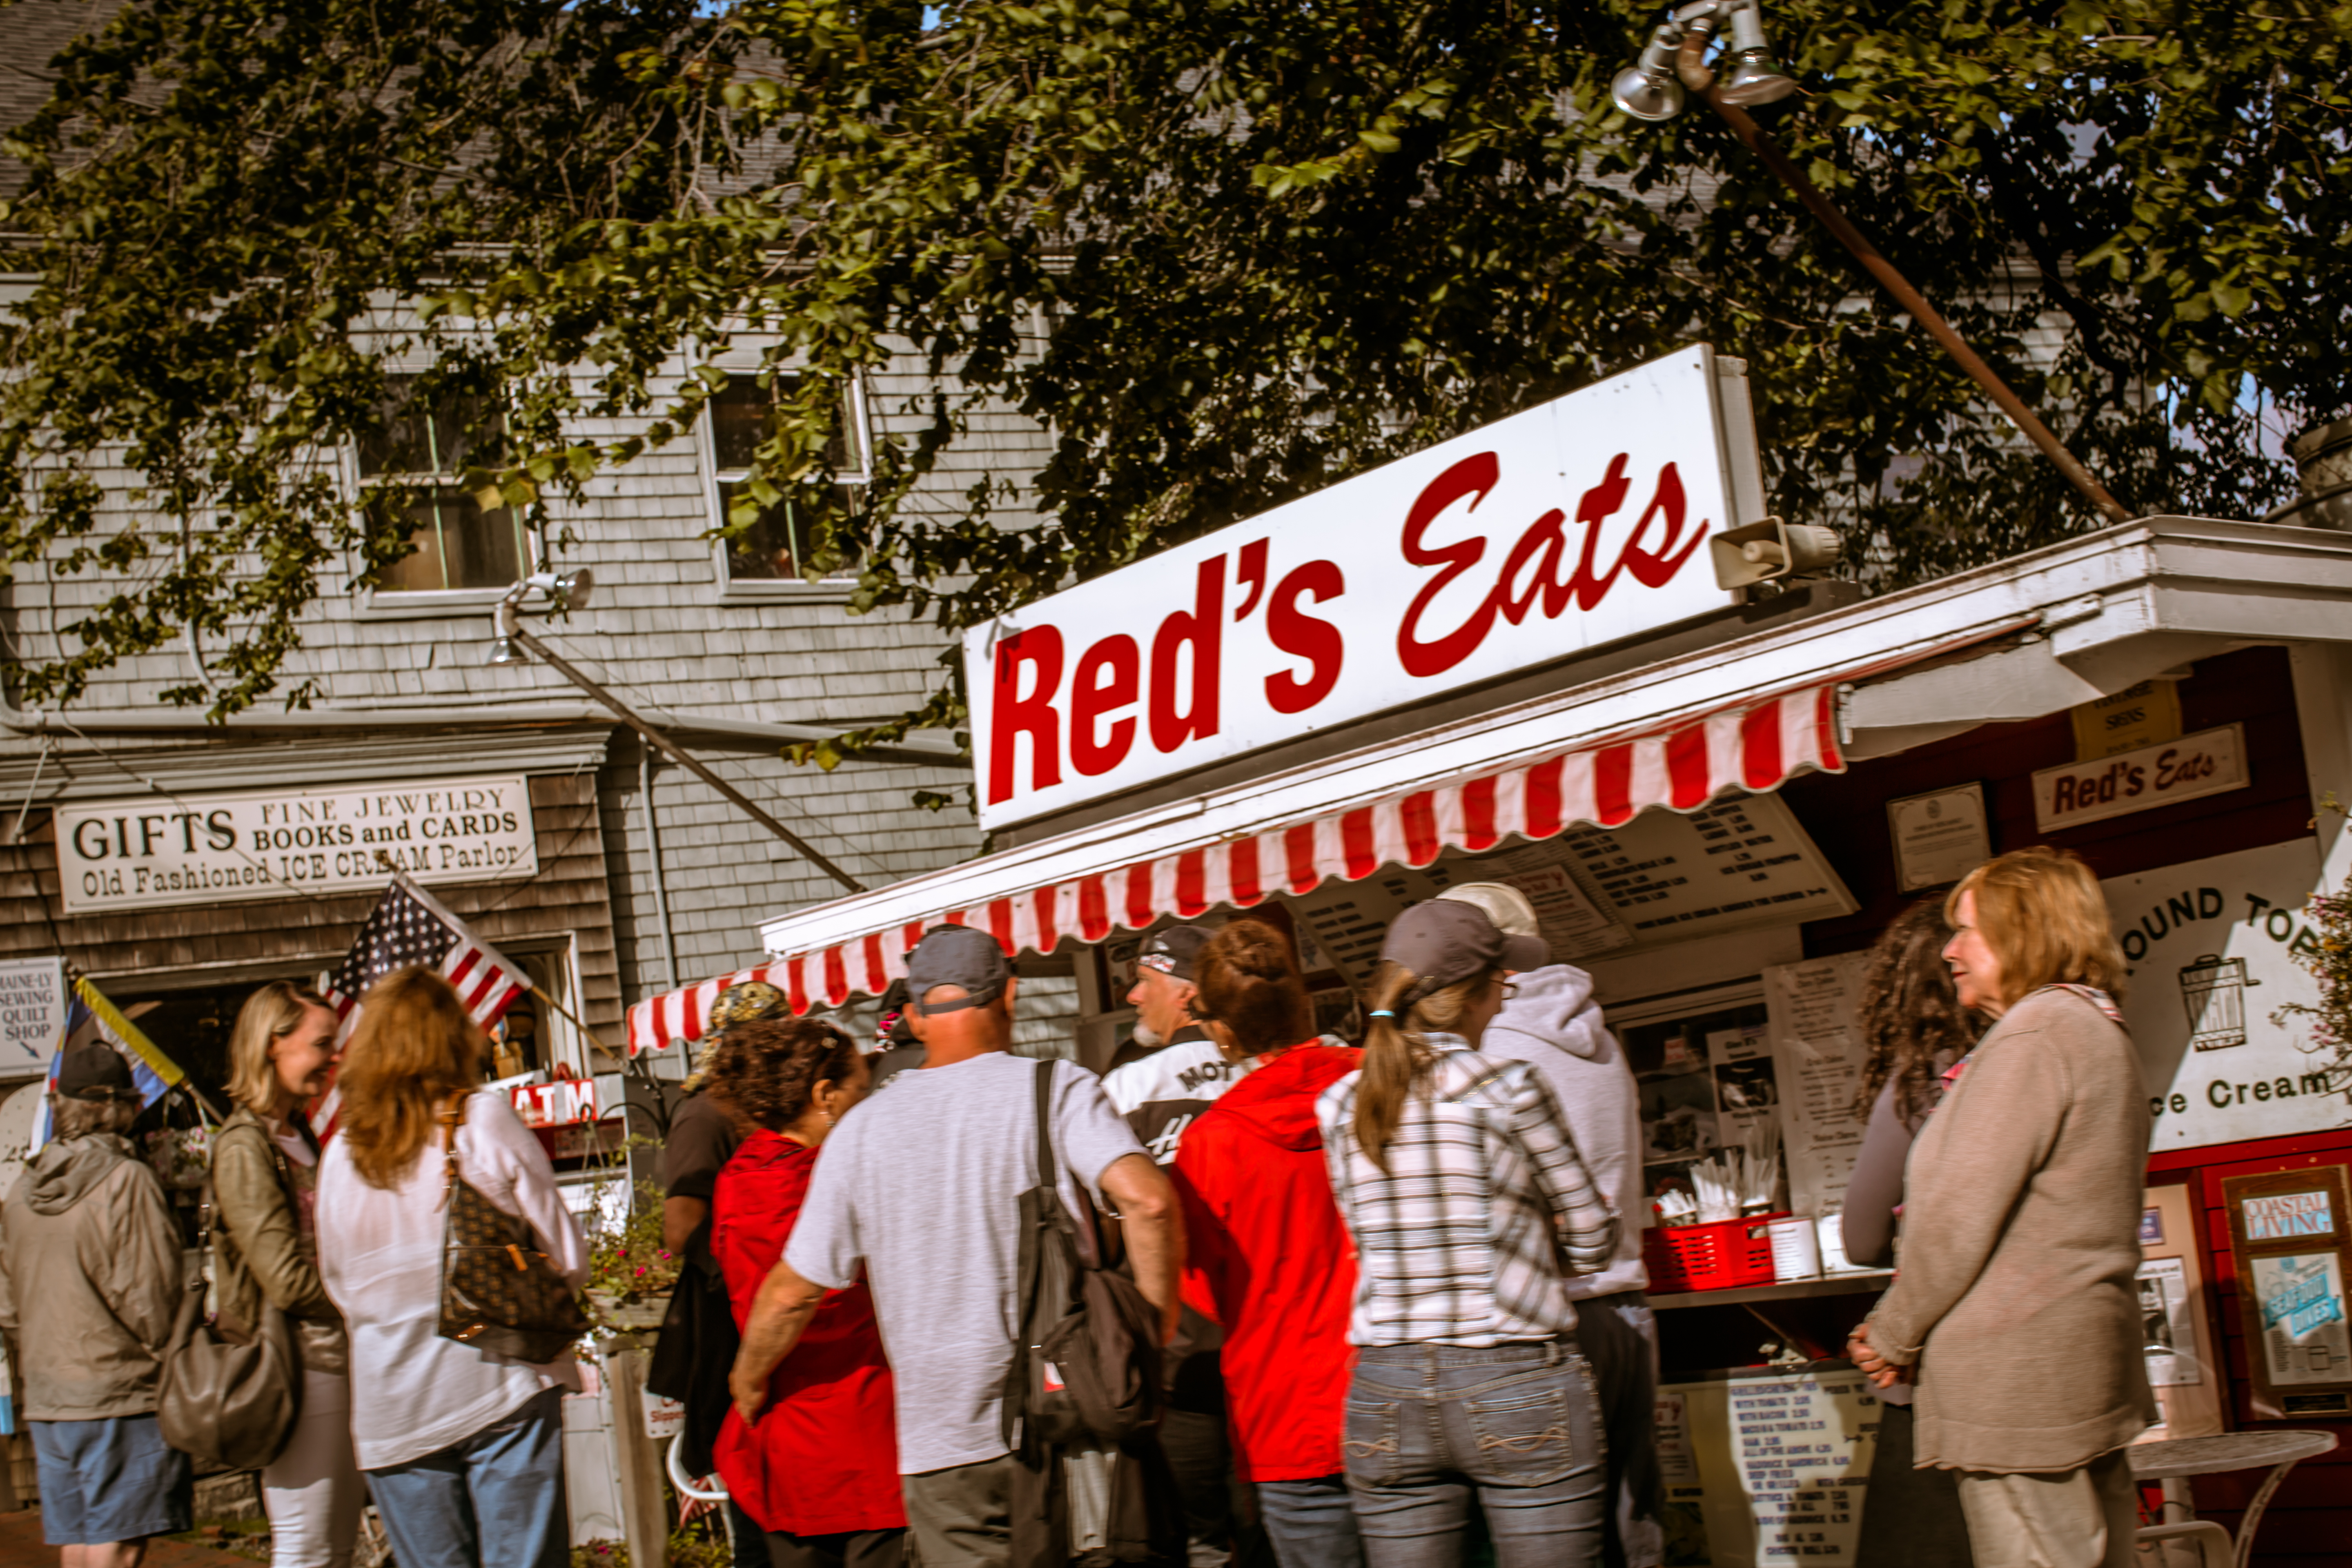 http://upload.wikimedia.org/wikipedia/commons/2/28/Red%27s_Eats,_Wiscasset,_Maine,_USA_2012.jpg